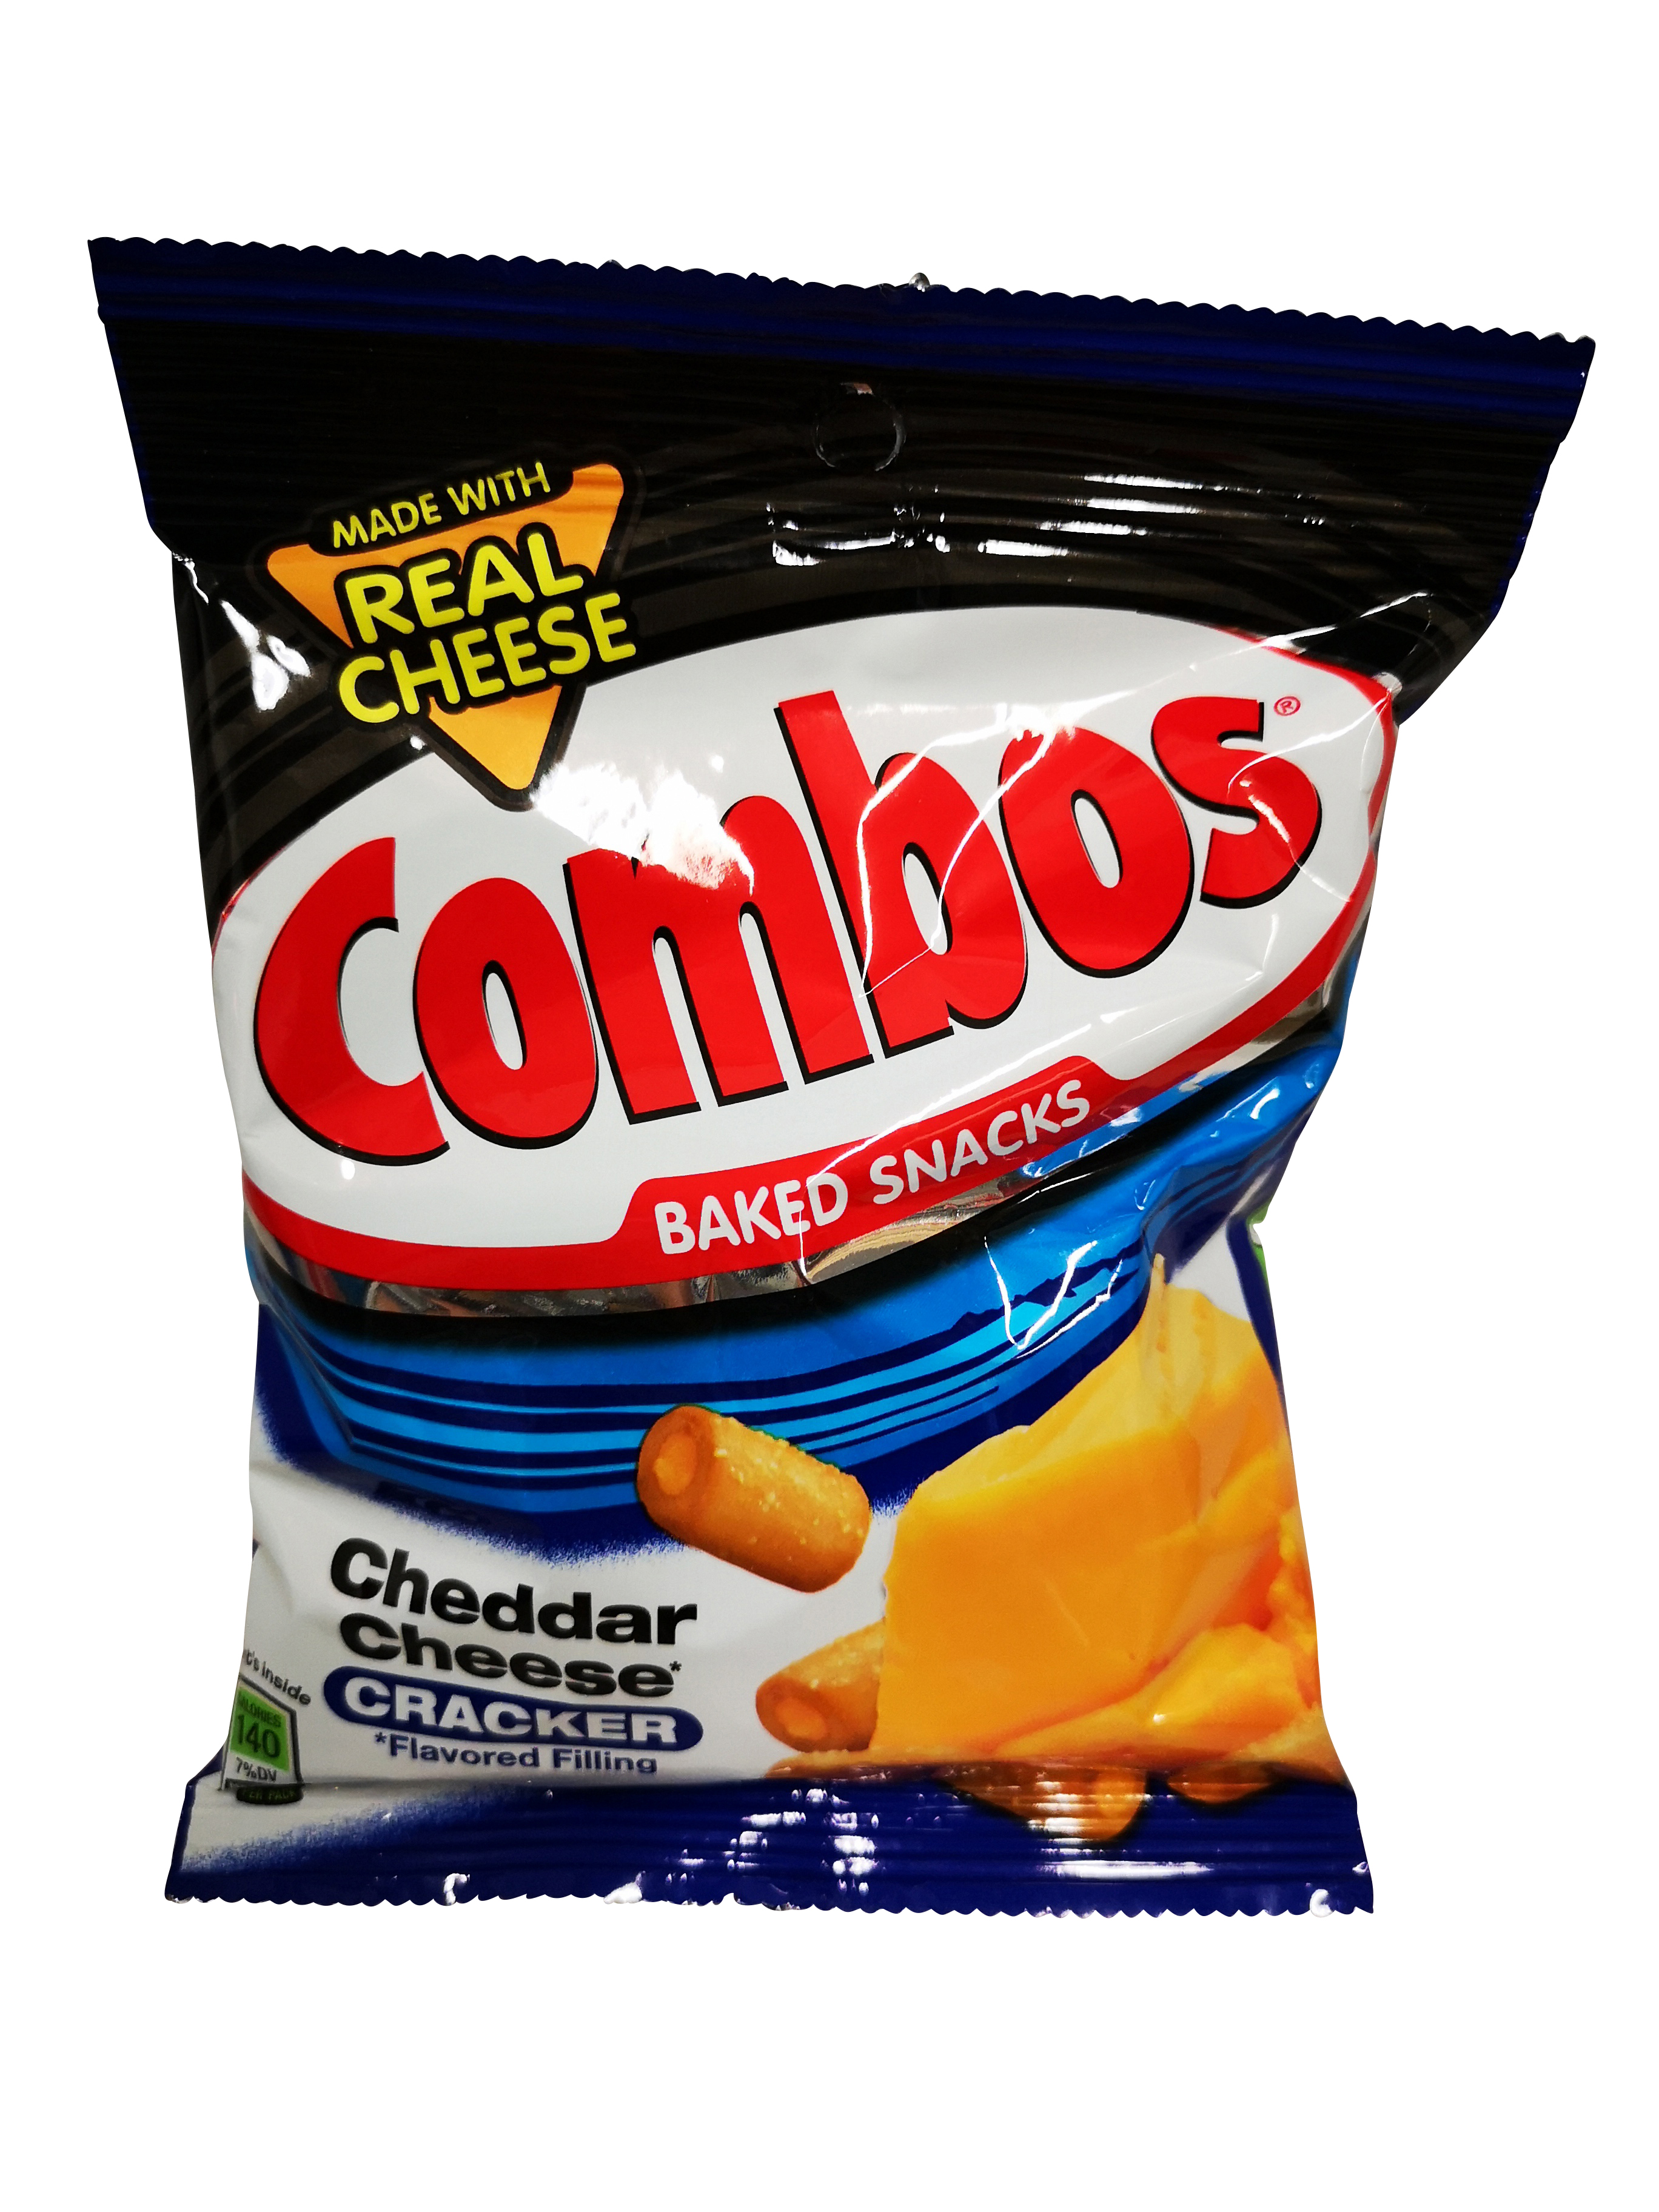 Cheddar Cheese Cracker Combos